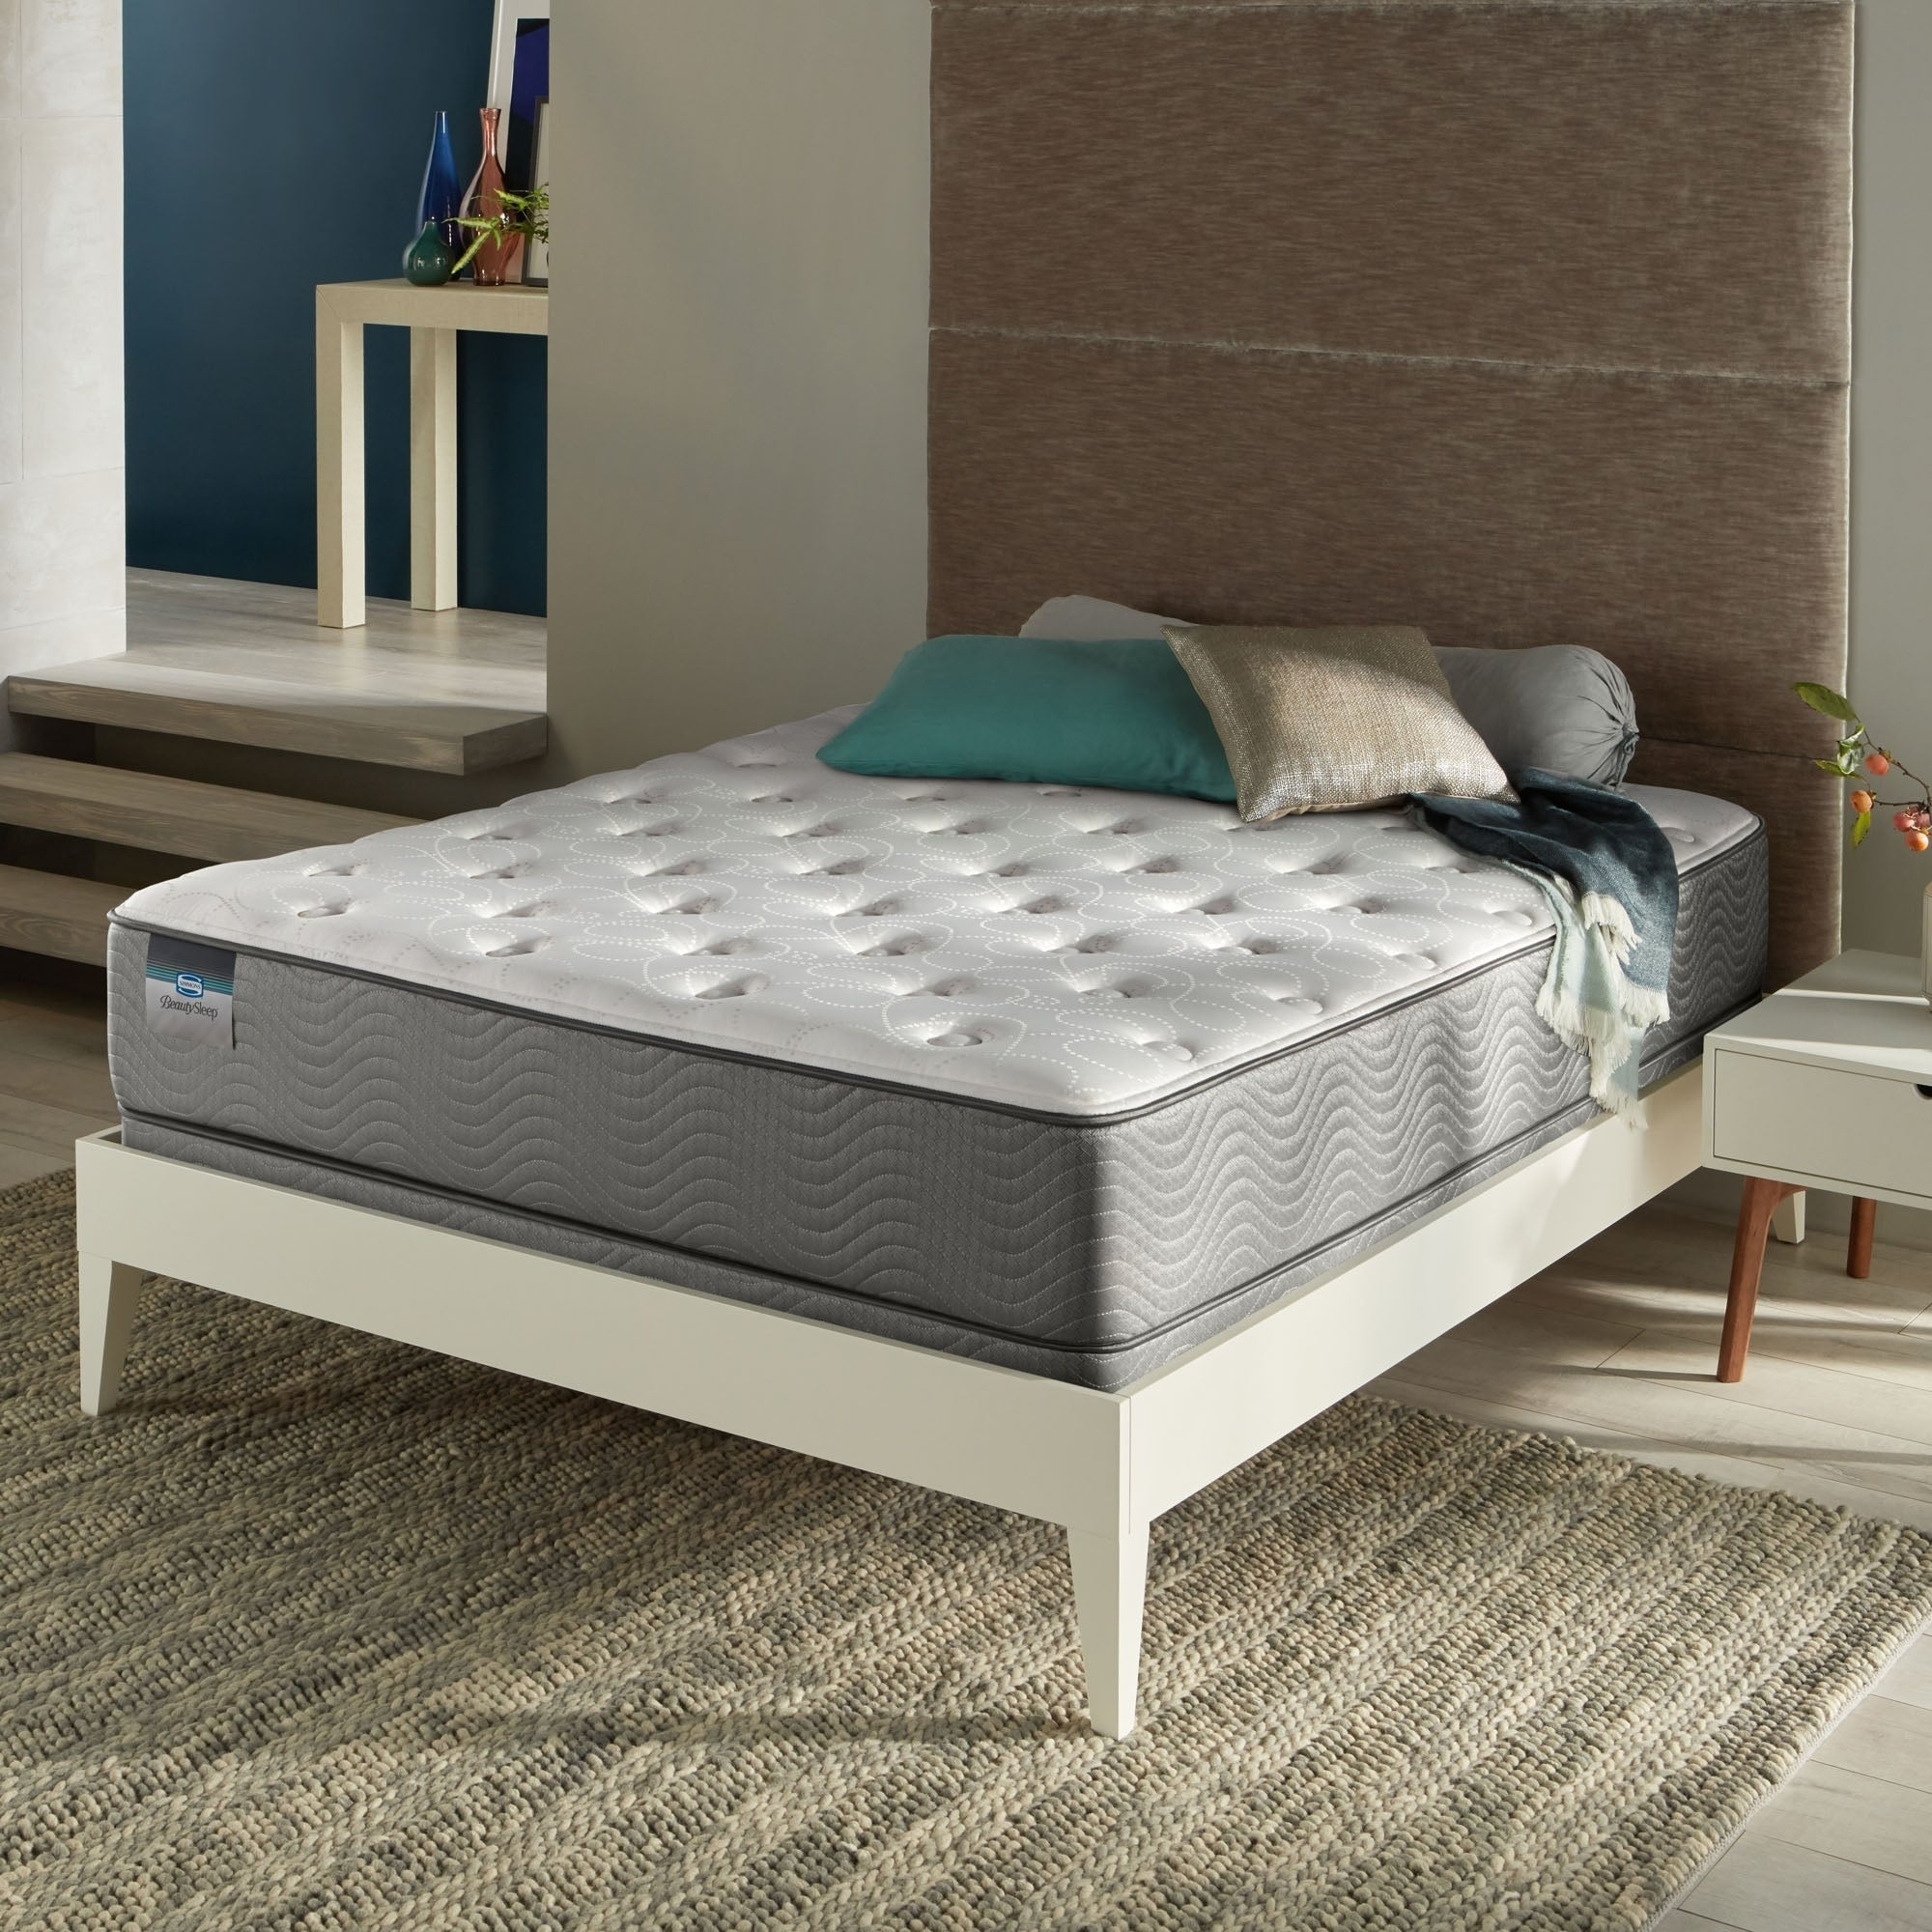 twin graphics charming sets mattress inspirational bedroom design plus with size best queen boxspring set home decor and jcpenney of for cheap